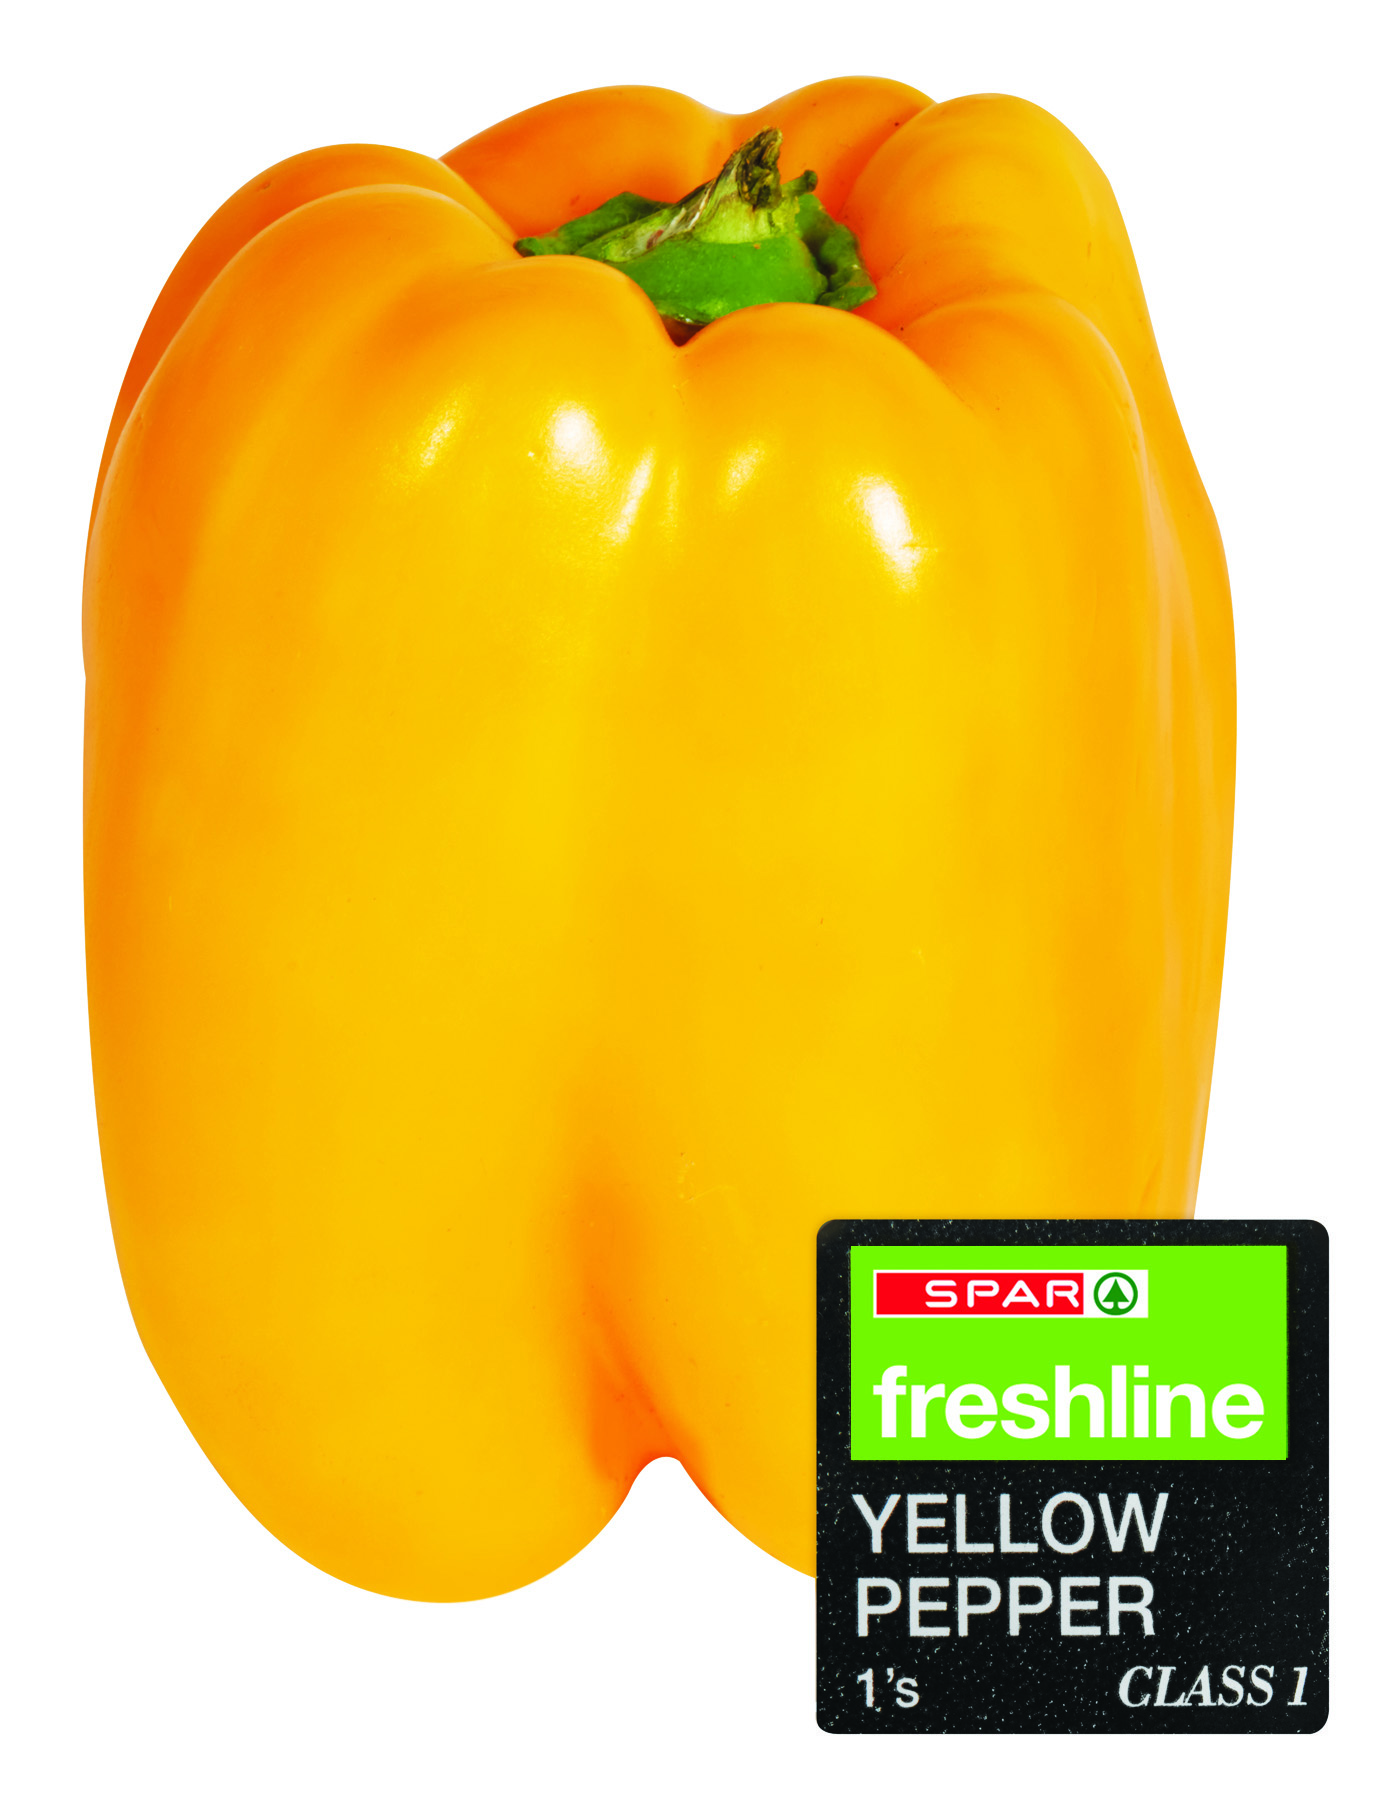 freshline yellow peppers - single